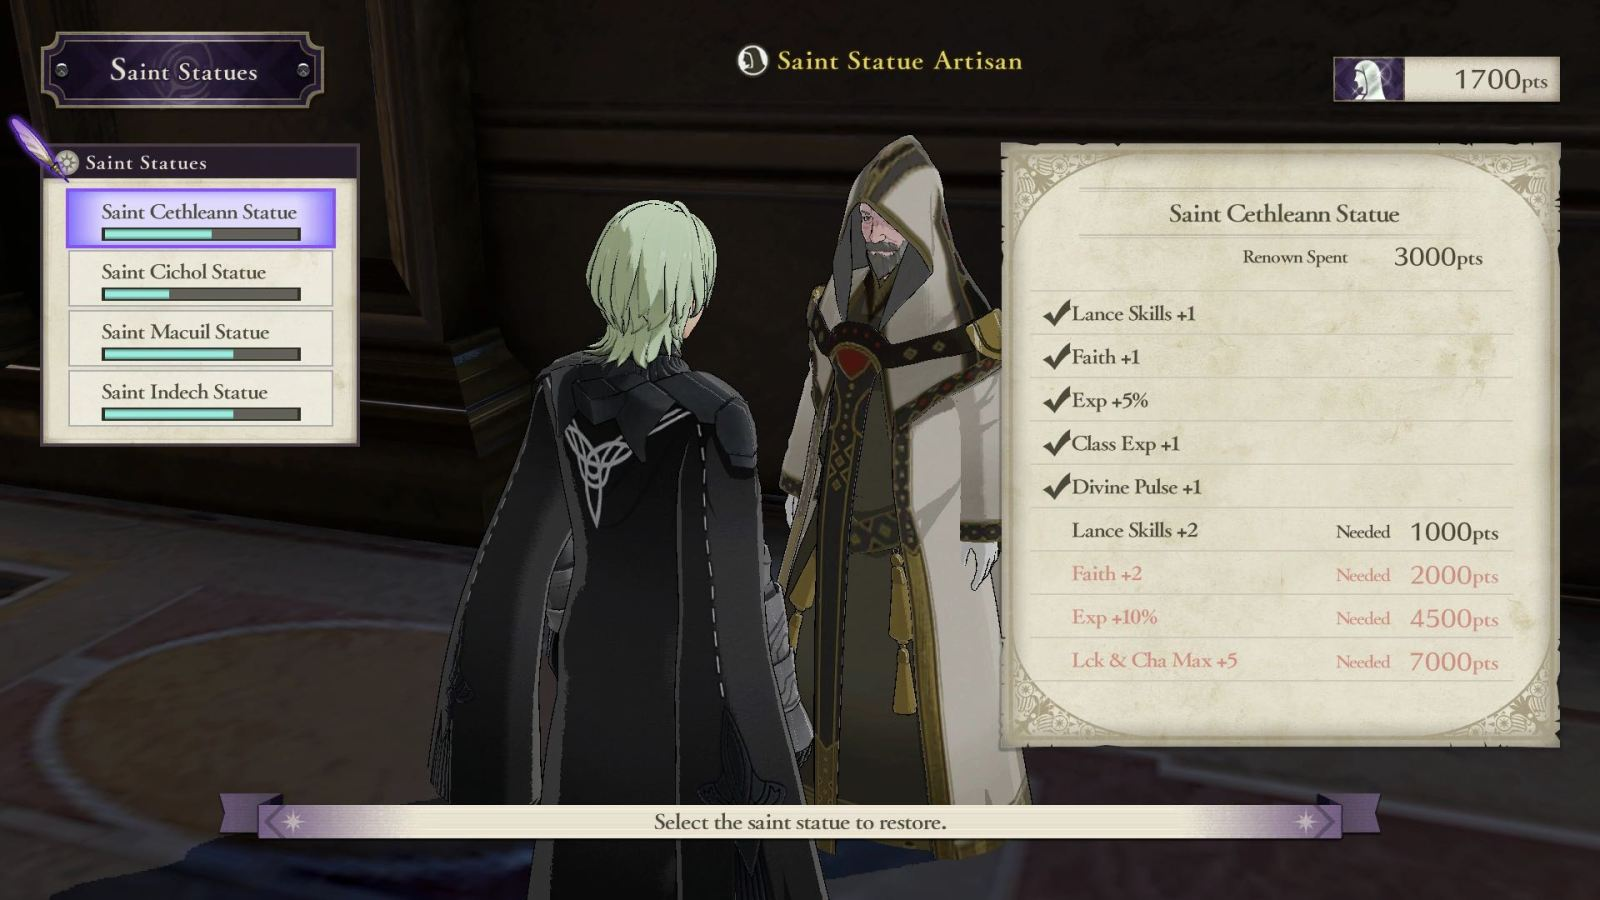 Fire Emblem: Three Houses Saint Statue Artisan Screenshot